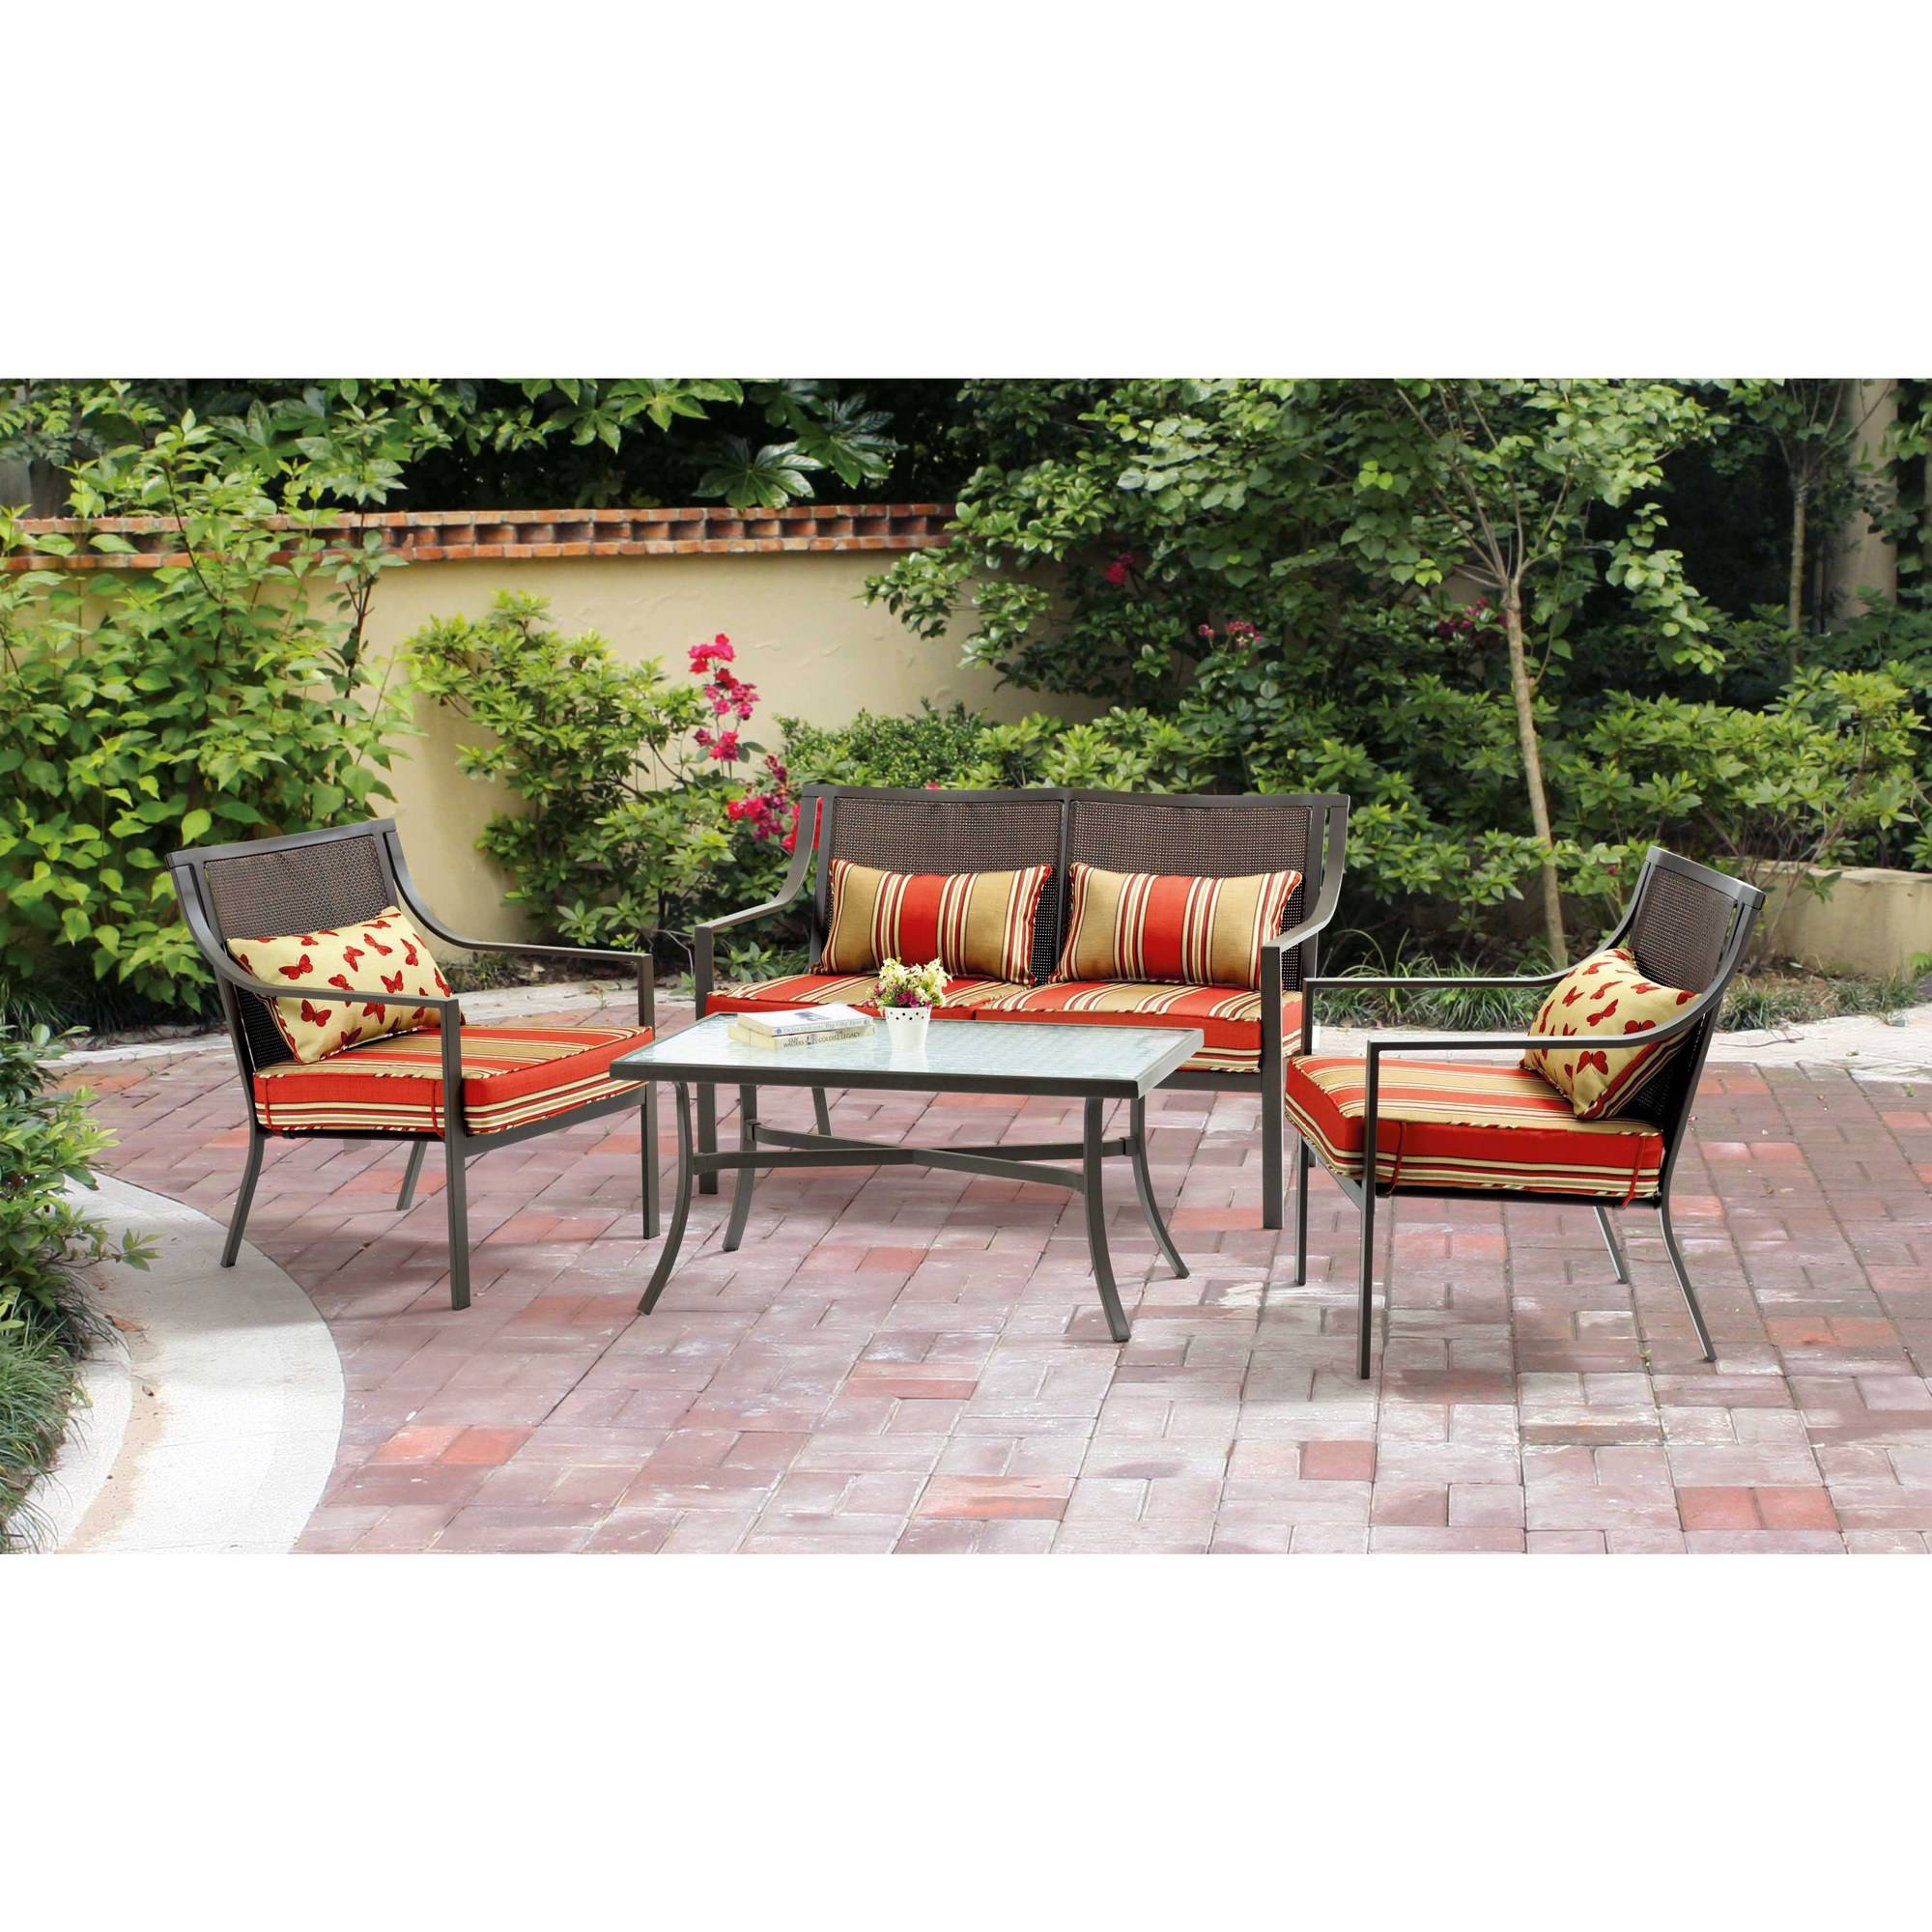 Mainstays Alexandra Square 4 Piece Patio Conversation Set, Red Stripe With  Butterflies, Seats